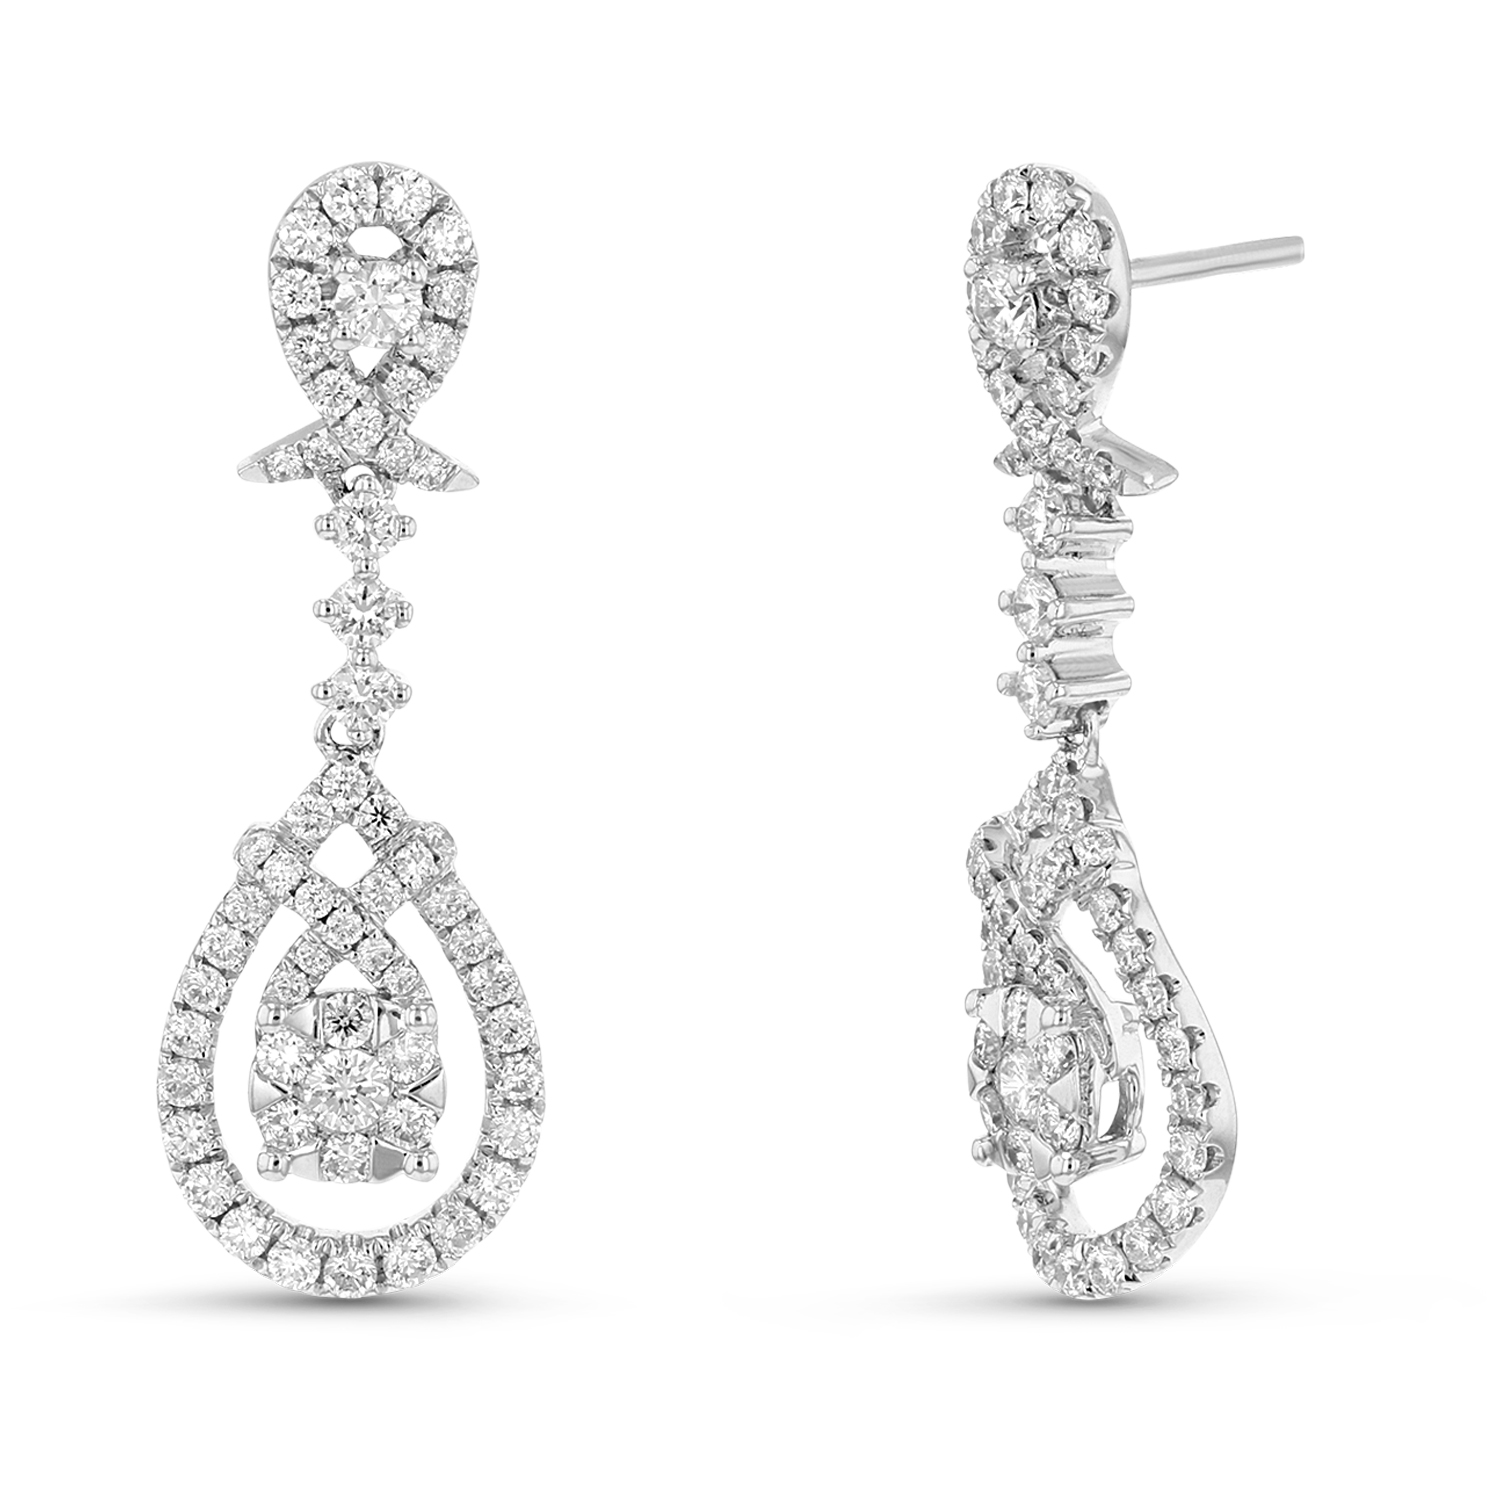 View 1.05 ctw Diamond Earring in 18K